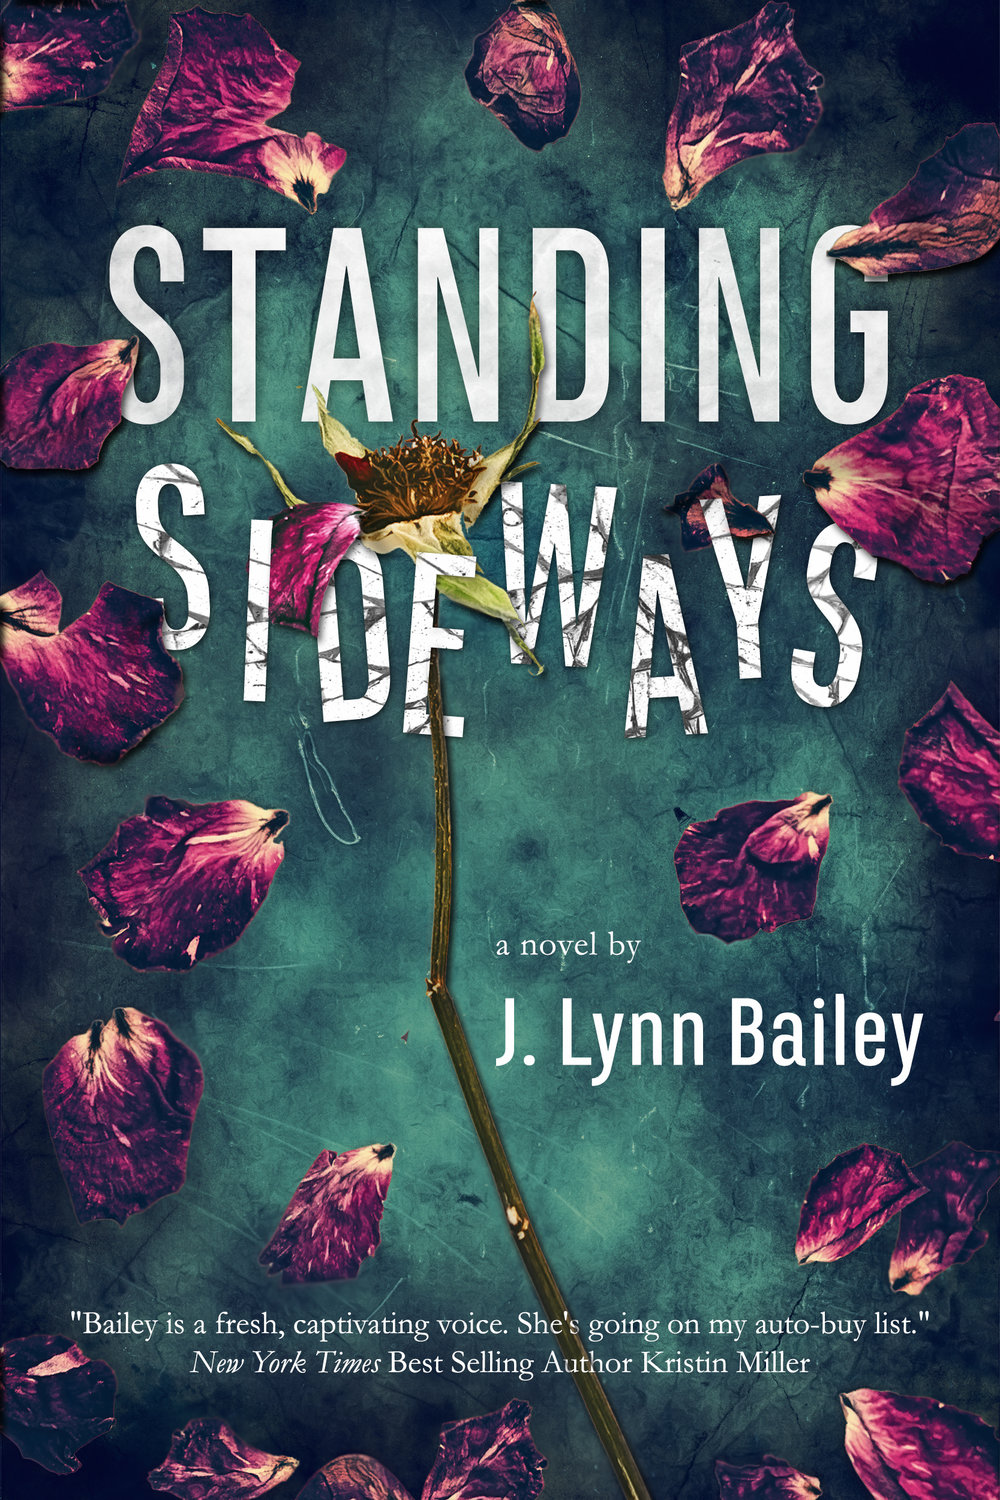 When Livia Stone suddenly loses her twin brother, Jasper, she must learn to navigate her new life alone. As she faces tragedy and starts down a road toward self-destruction, Daniel enters Livia's life—at a moment when she needs it most.      Standing Sideways is a poignant, relevant, and touching story of survival, courage, and compassion that will have readers crying, laughing, and most of all, debating the issues affecting the lives of parents and teens alike on a journey of hope and forgiveness.